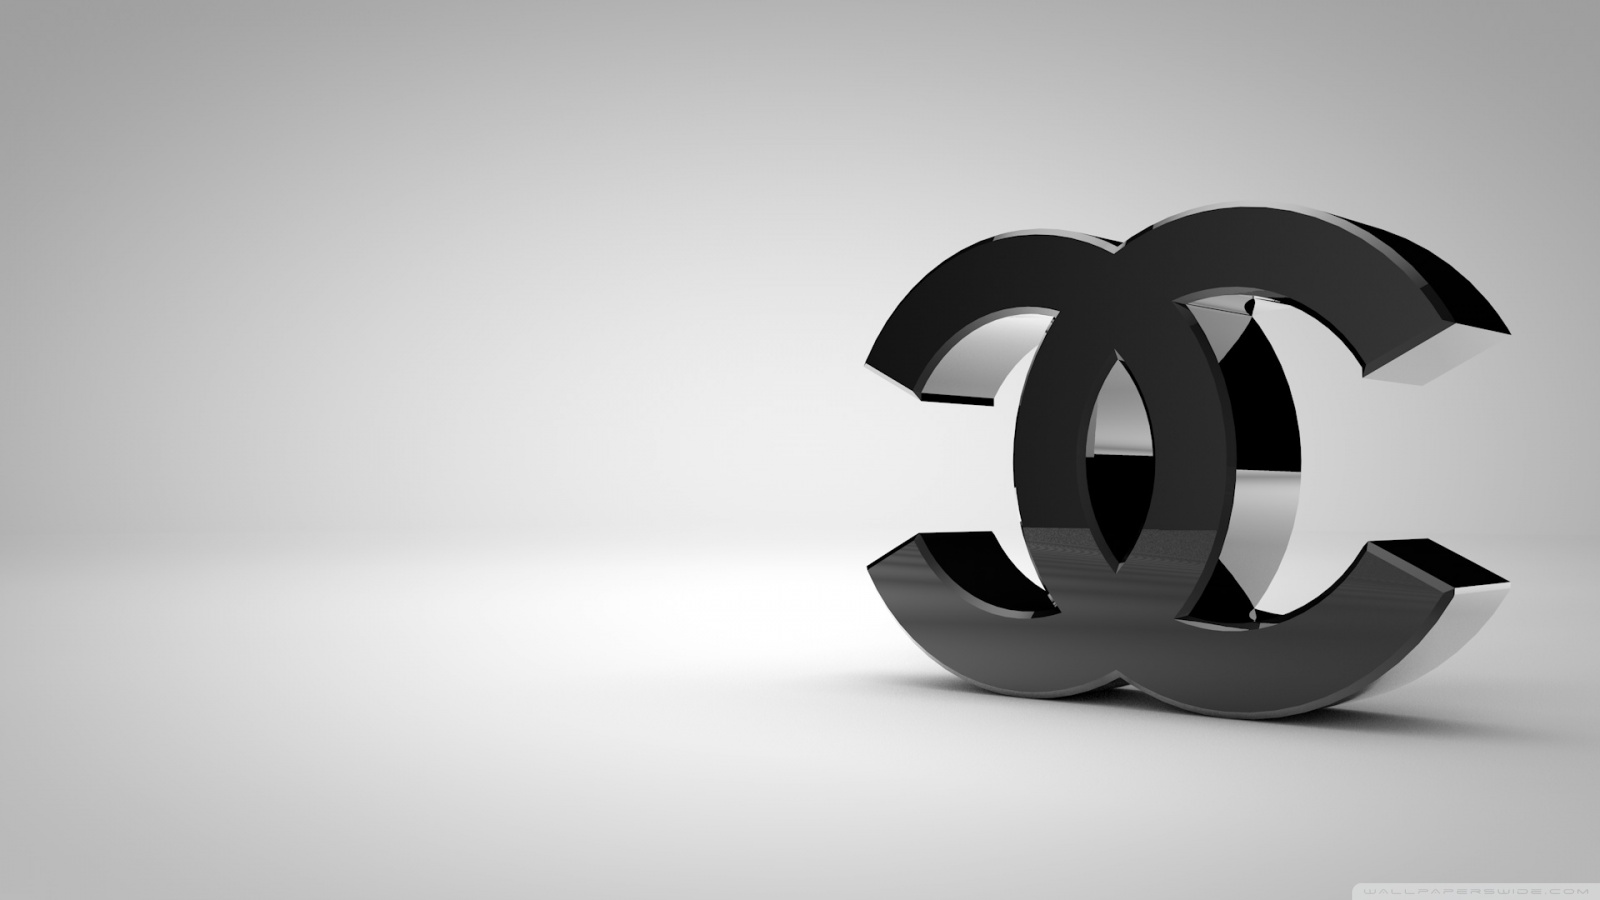 Chanel Wallpaper and Background Image | 1600x900 | ID ...